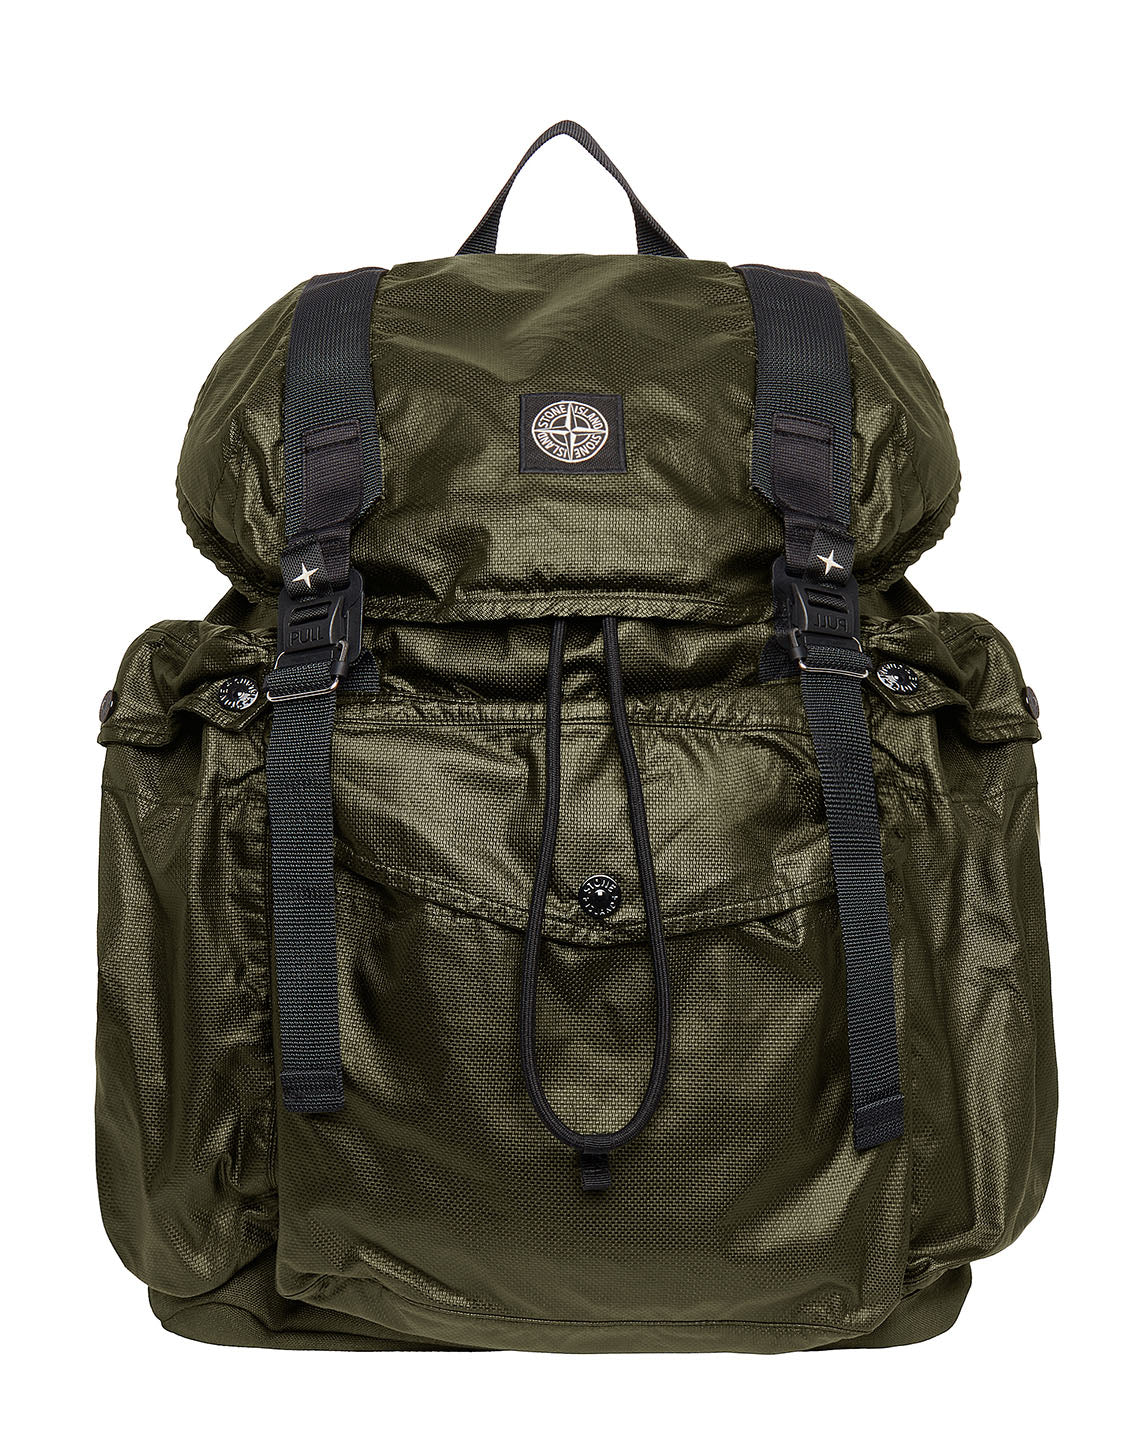 90370 MUSSOLA GOMMATA CANVAS PRINT Rucksack in Olive Green